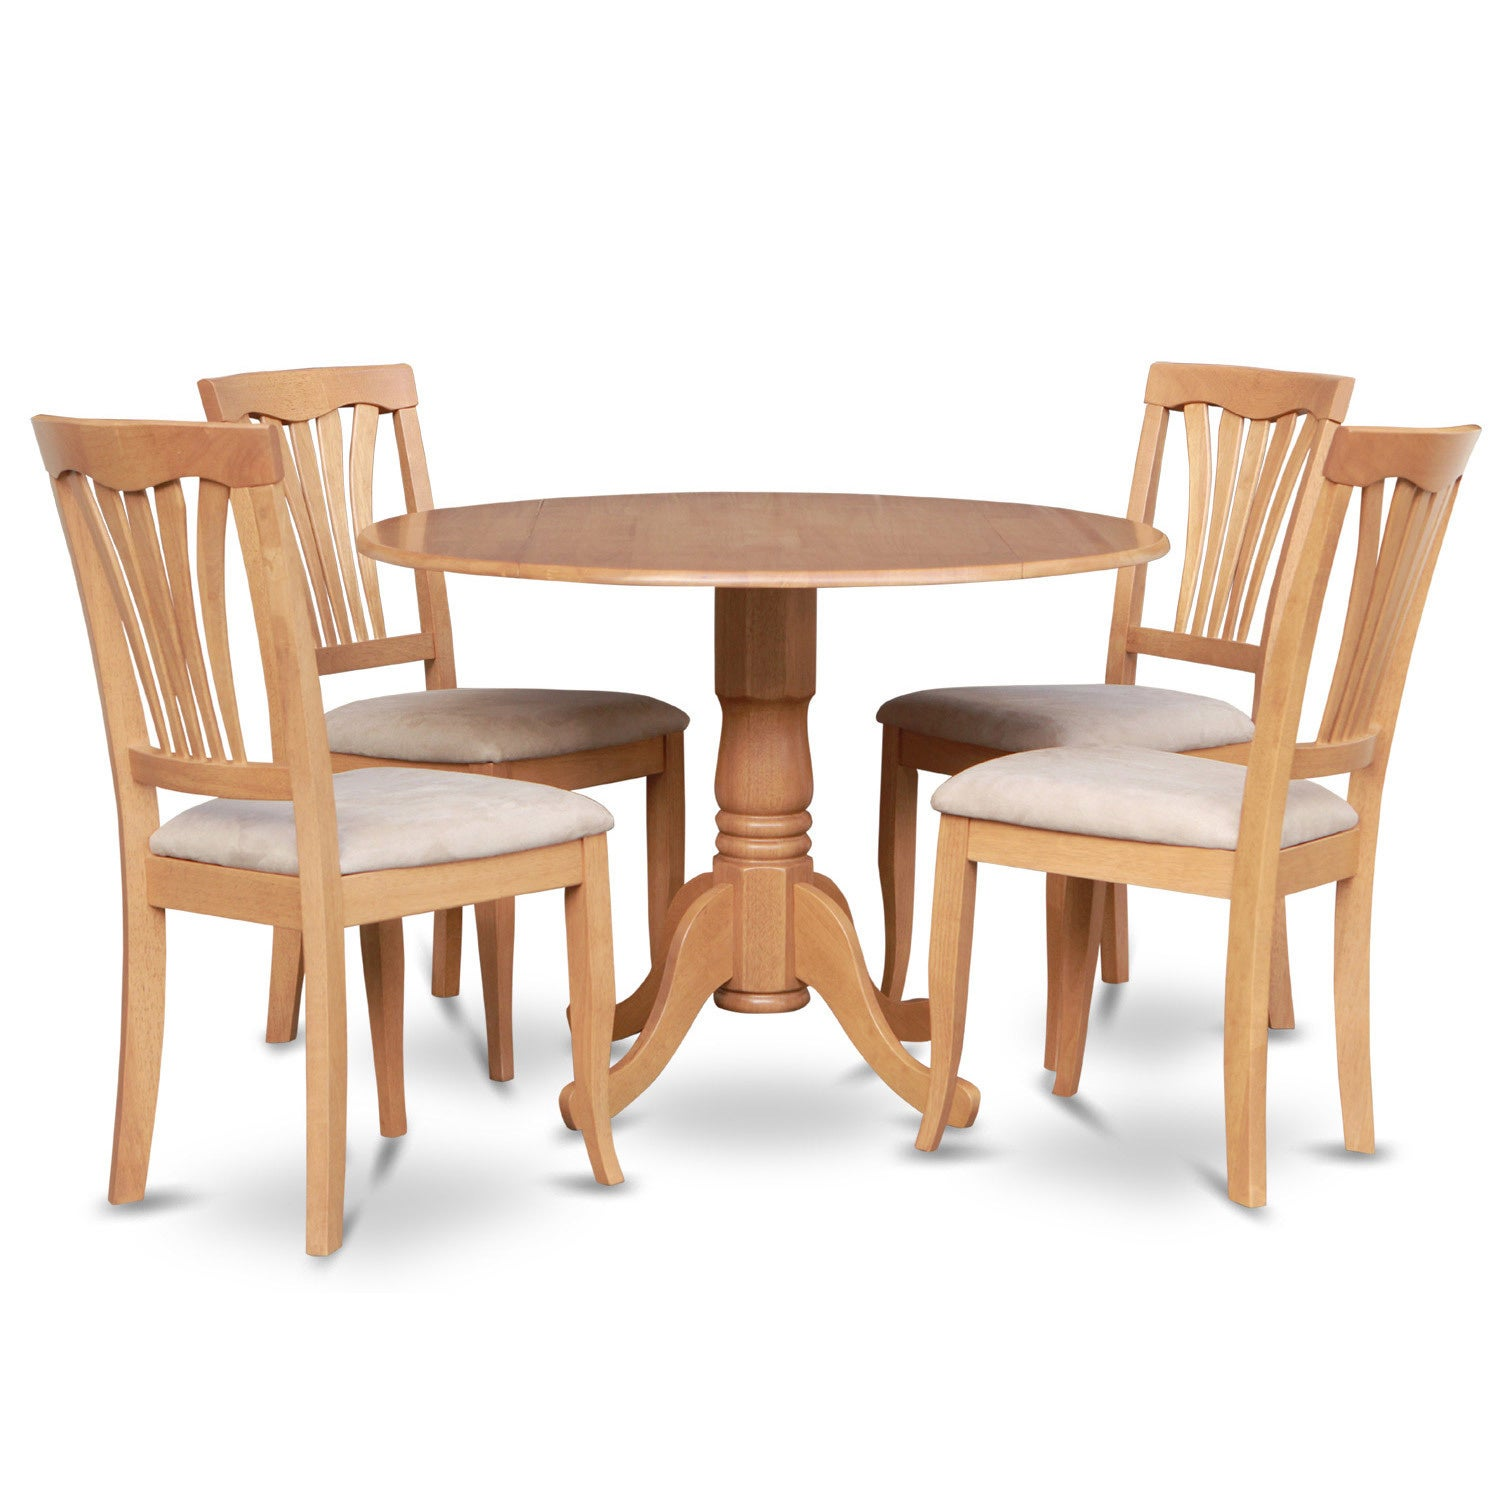 oak round kitchen table and 4 kitchen chairs 5 piece dining set ebay. Black Bedroom Furniture Sets. Home Design Ideas